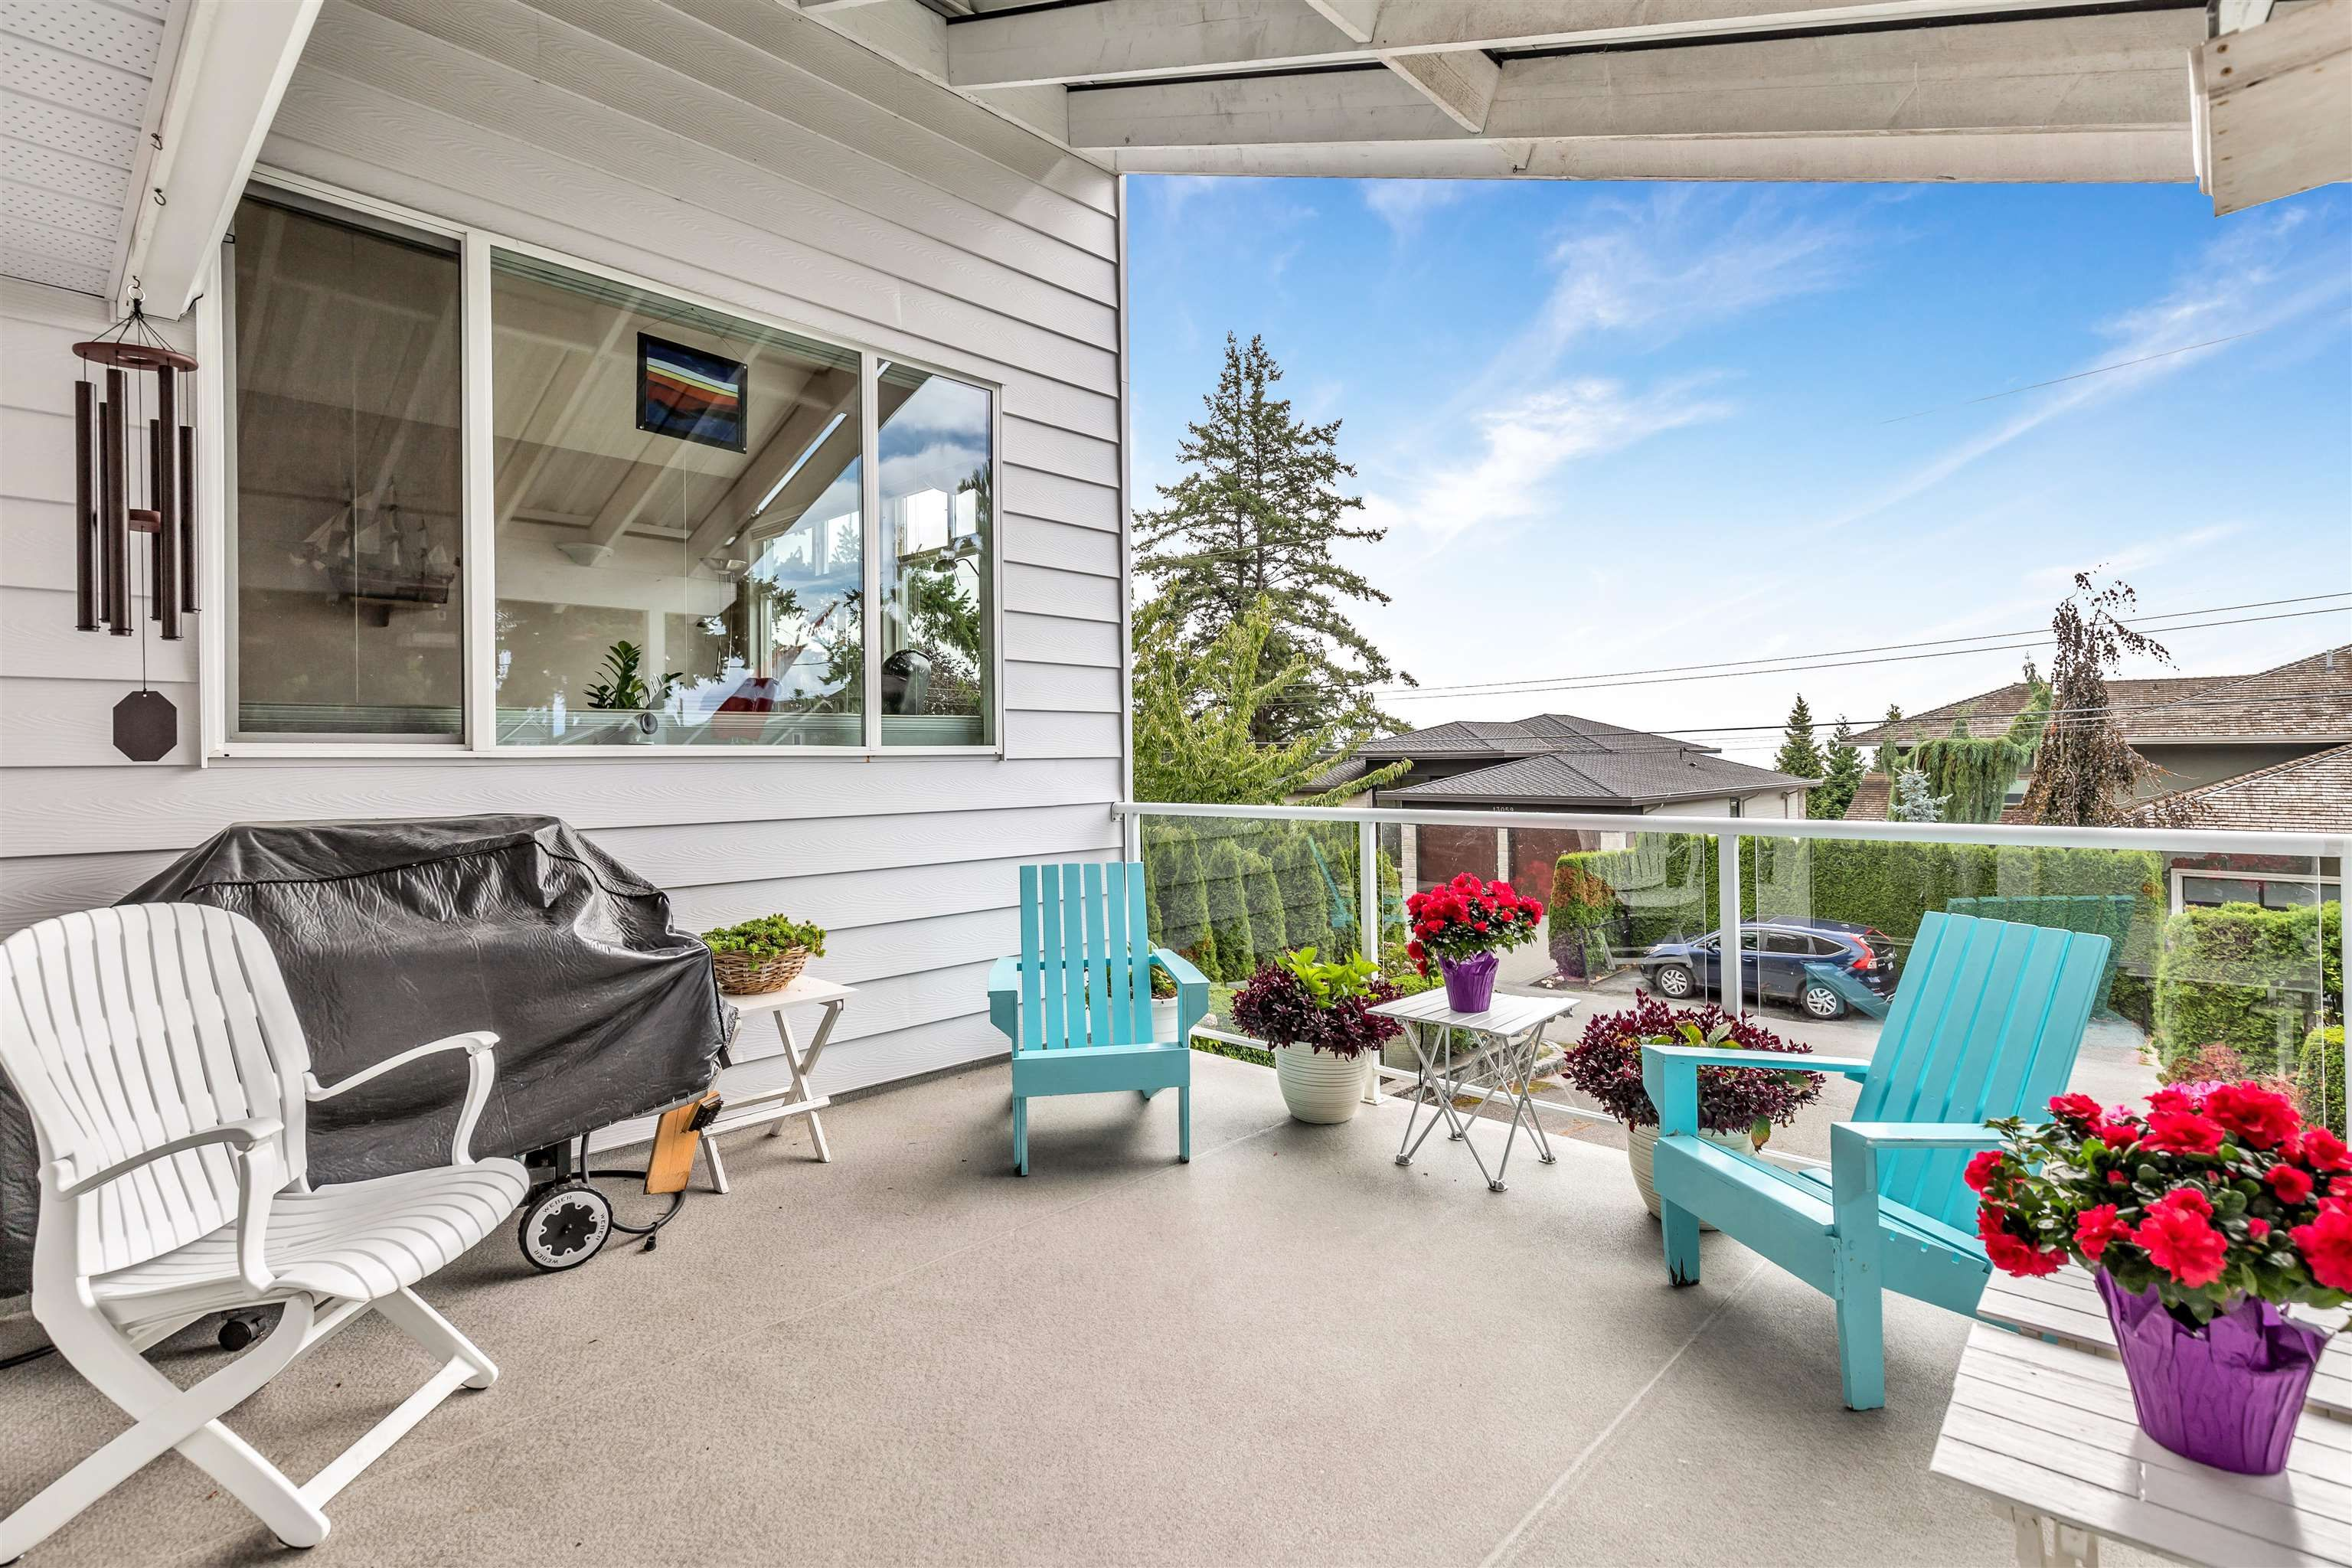 """Main Photo: 13048 MARINE Drive in Surrey: Crescent Bch Ocean Pk. House for sale in """"OCEAN PARK"""" (South Surrey White Rock)  : MLS®# R2616600"""